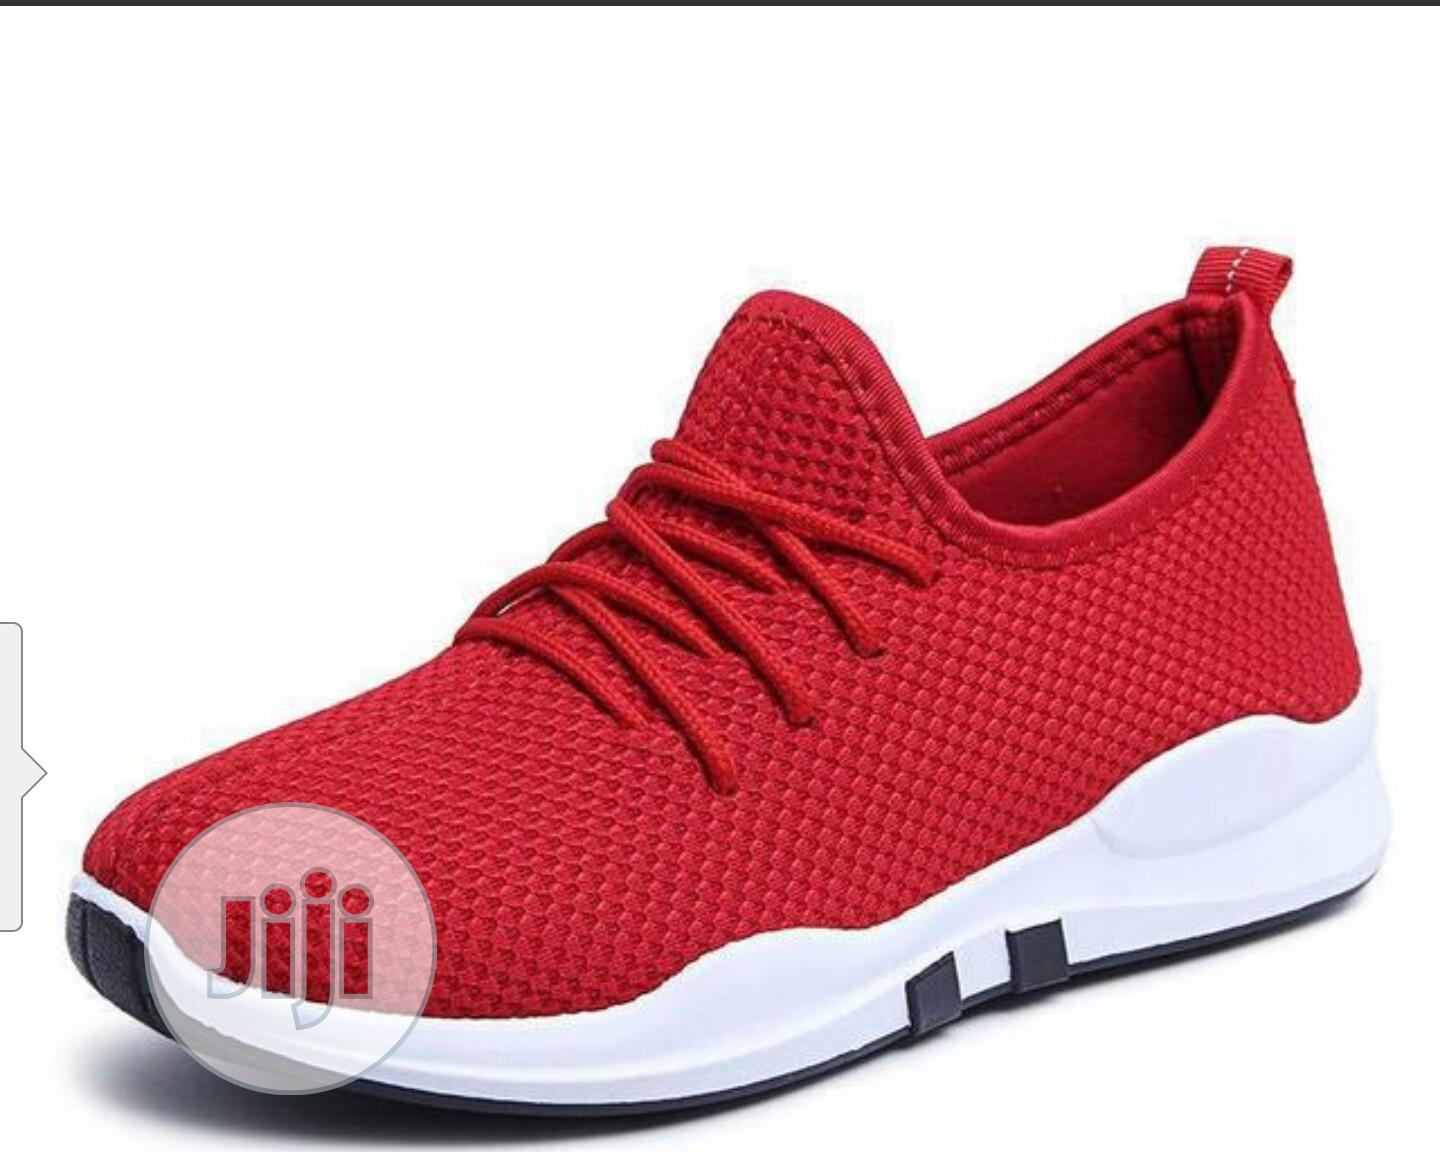 Promo Price Red Sneakers Breathable Comfy